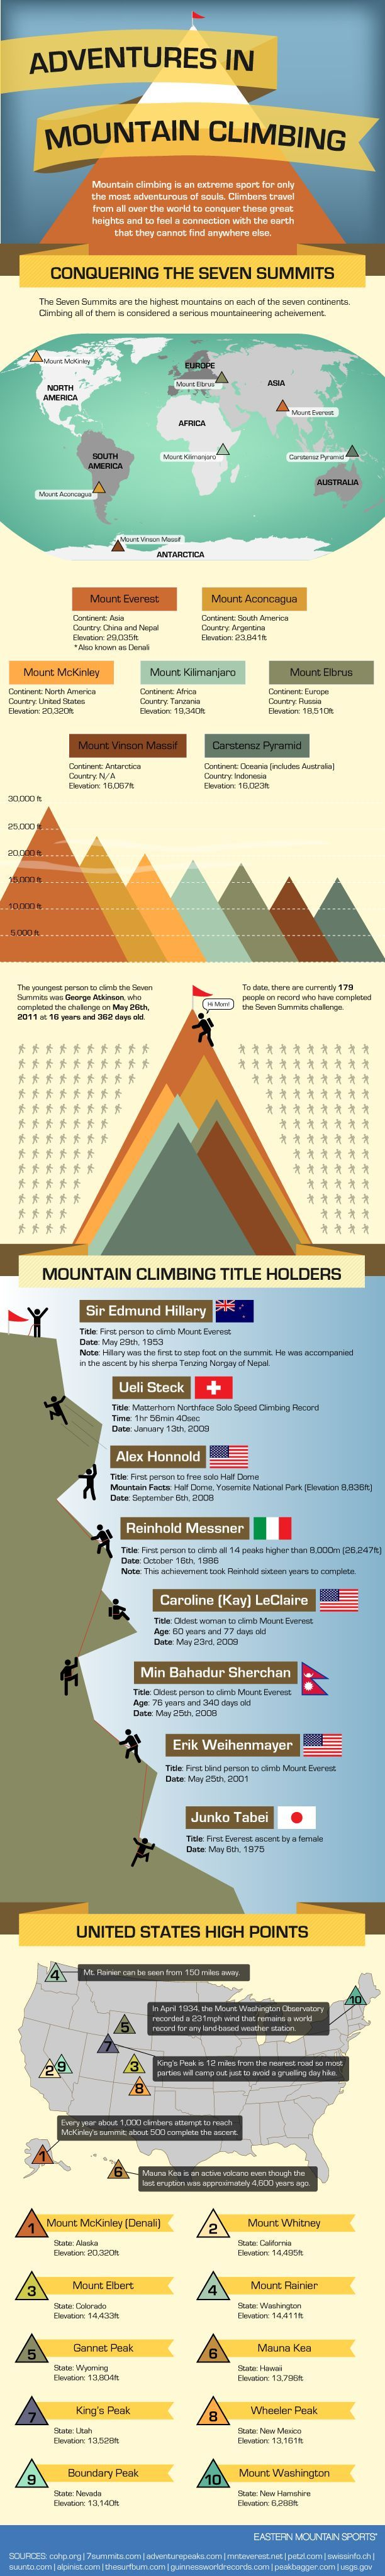 Check out how others have taken climbing to the extreme by conquering the seven summits and breaking worldwide records. It might even inspire you to p